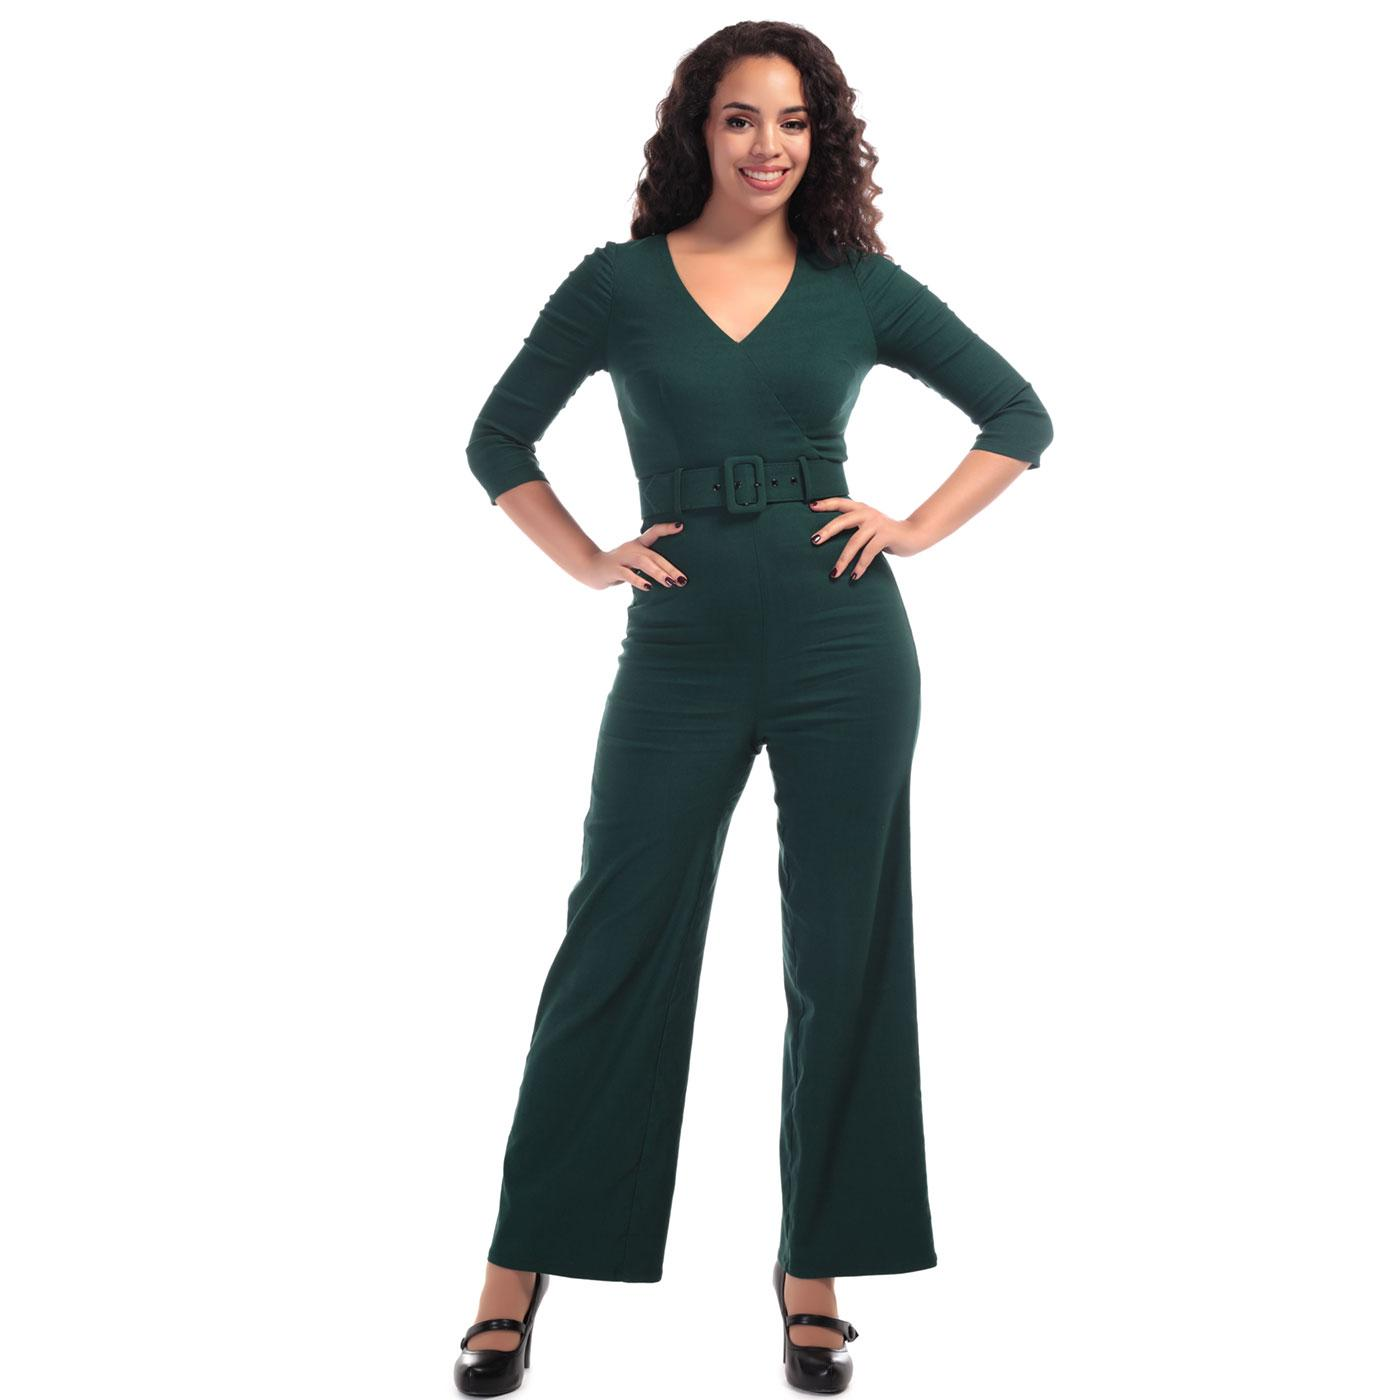 Jessi COLLECTIF Retro 70s Women's Jumpsuit Green